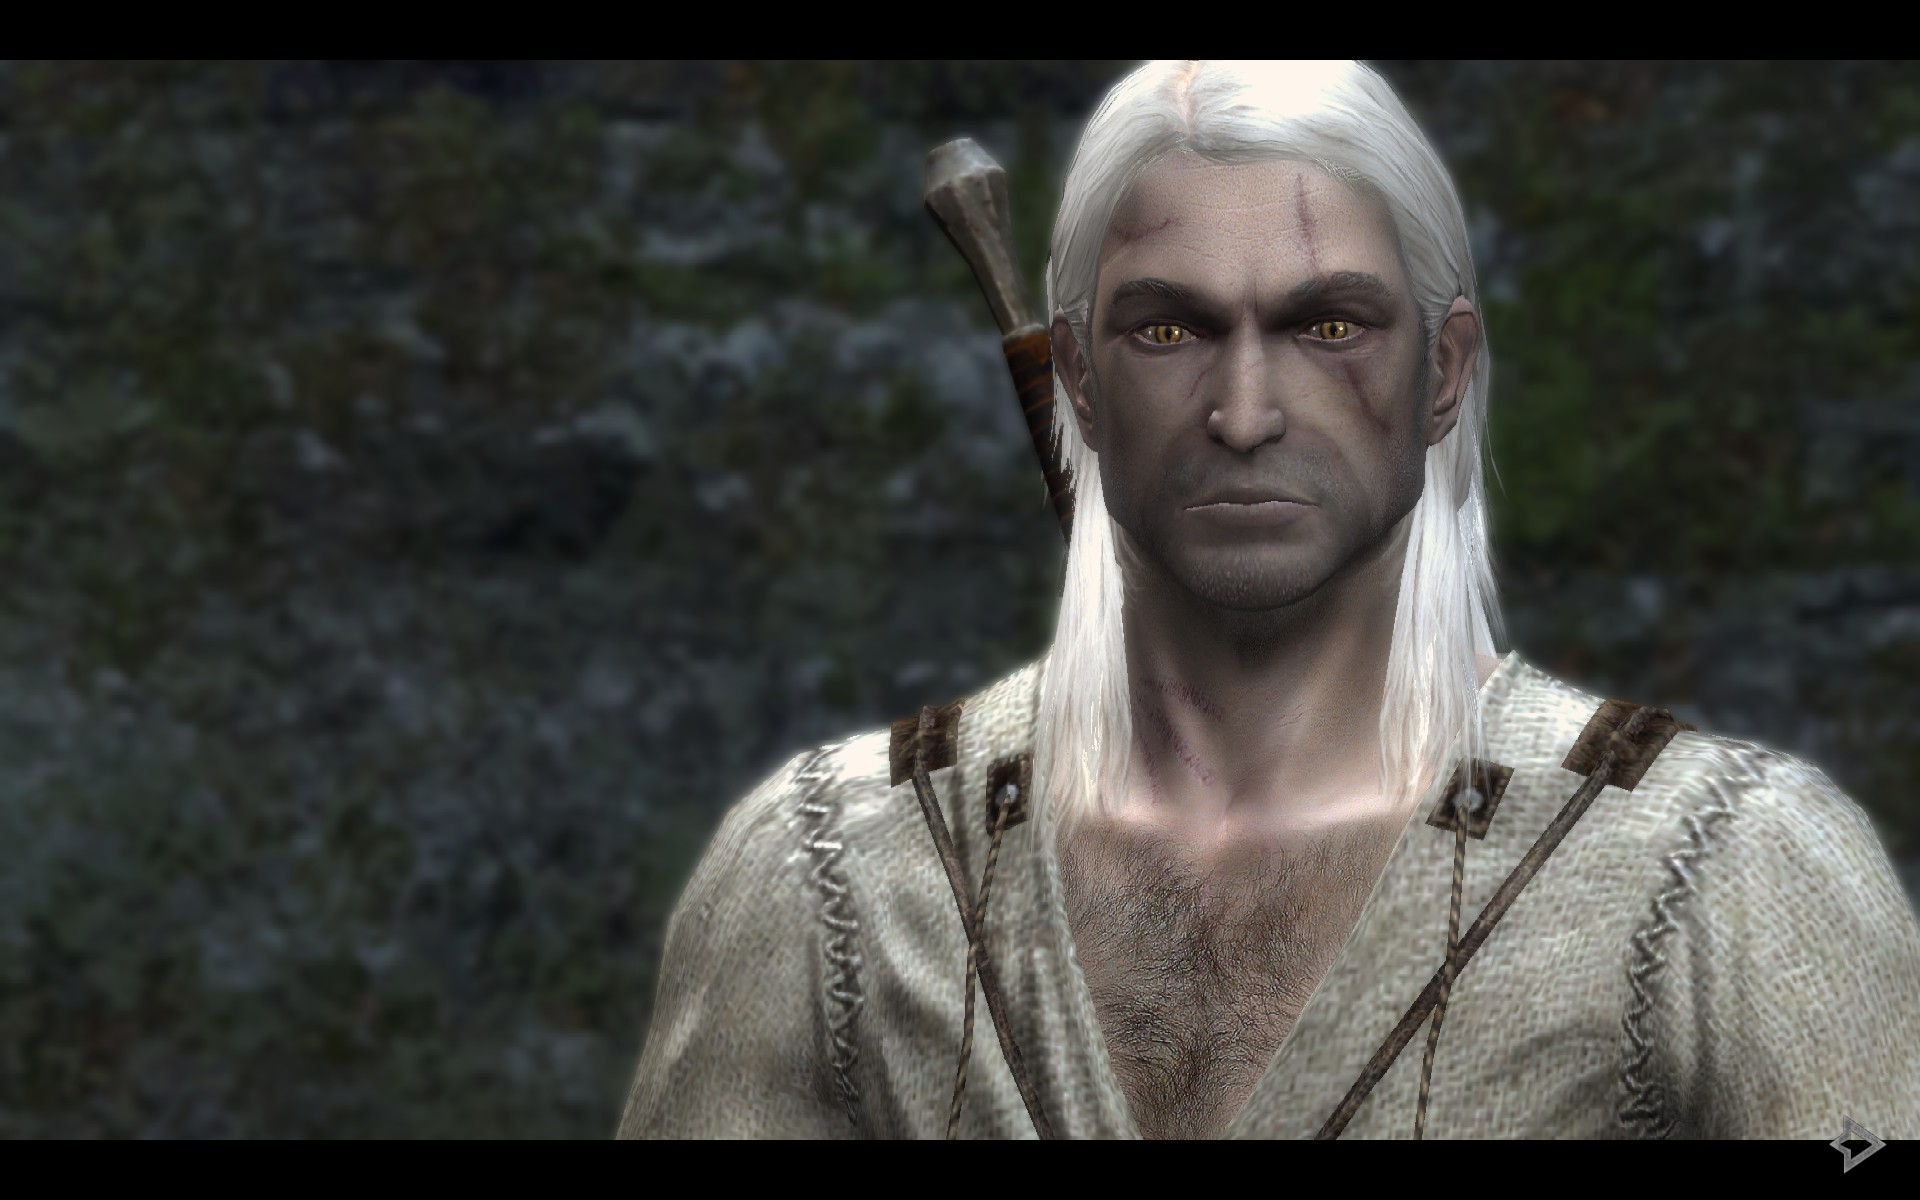 670-2-1400543694.jpg - Witcher, the